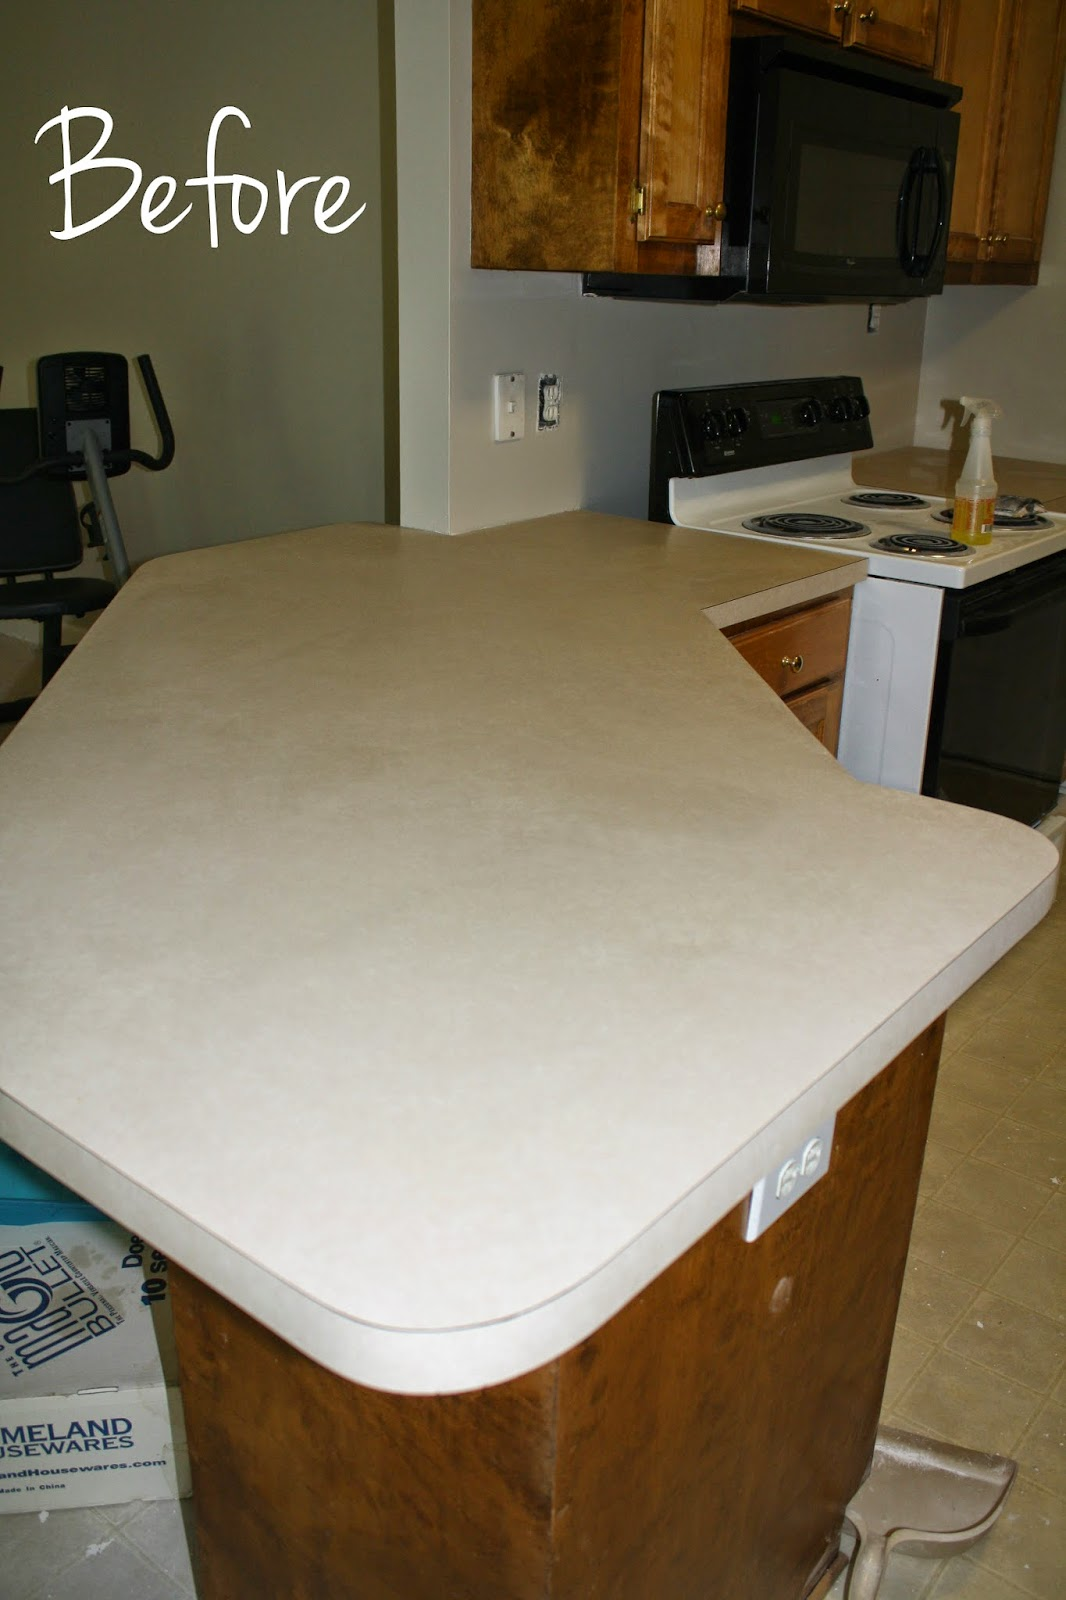 Faux Granite Countertops Cost : ... counters at 1 10th the price of real granite here s a before and after